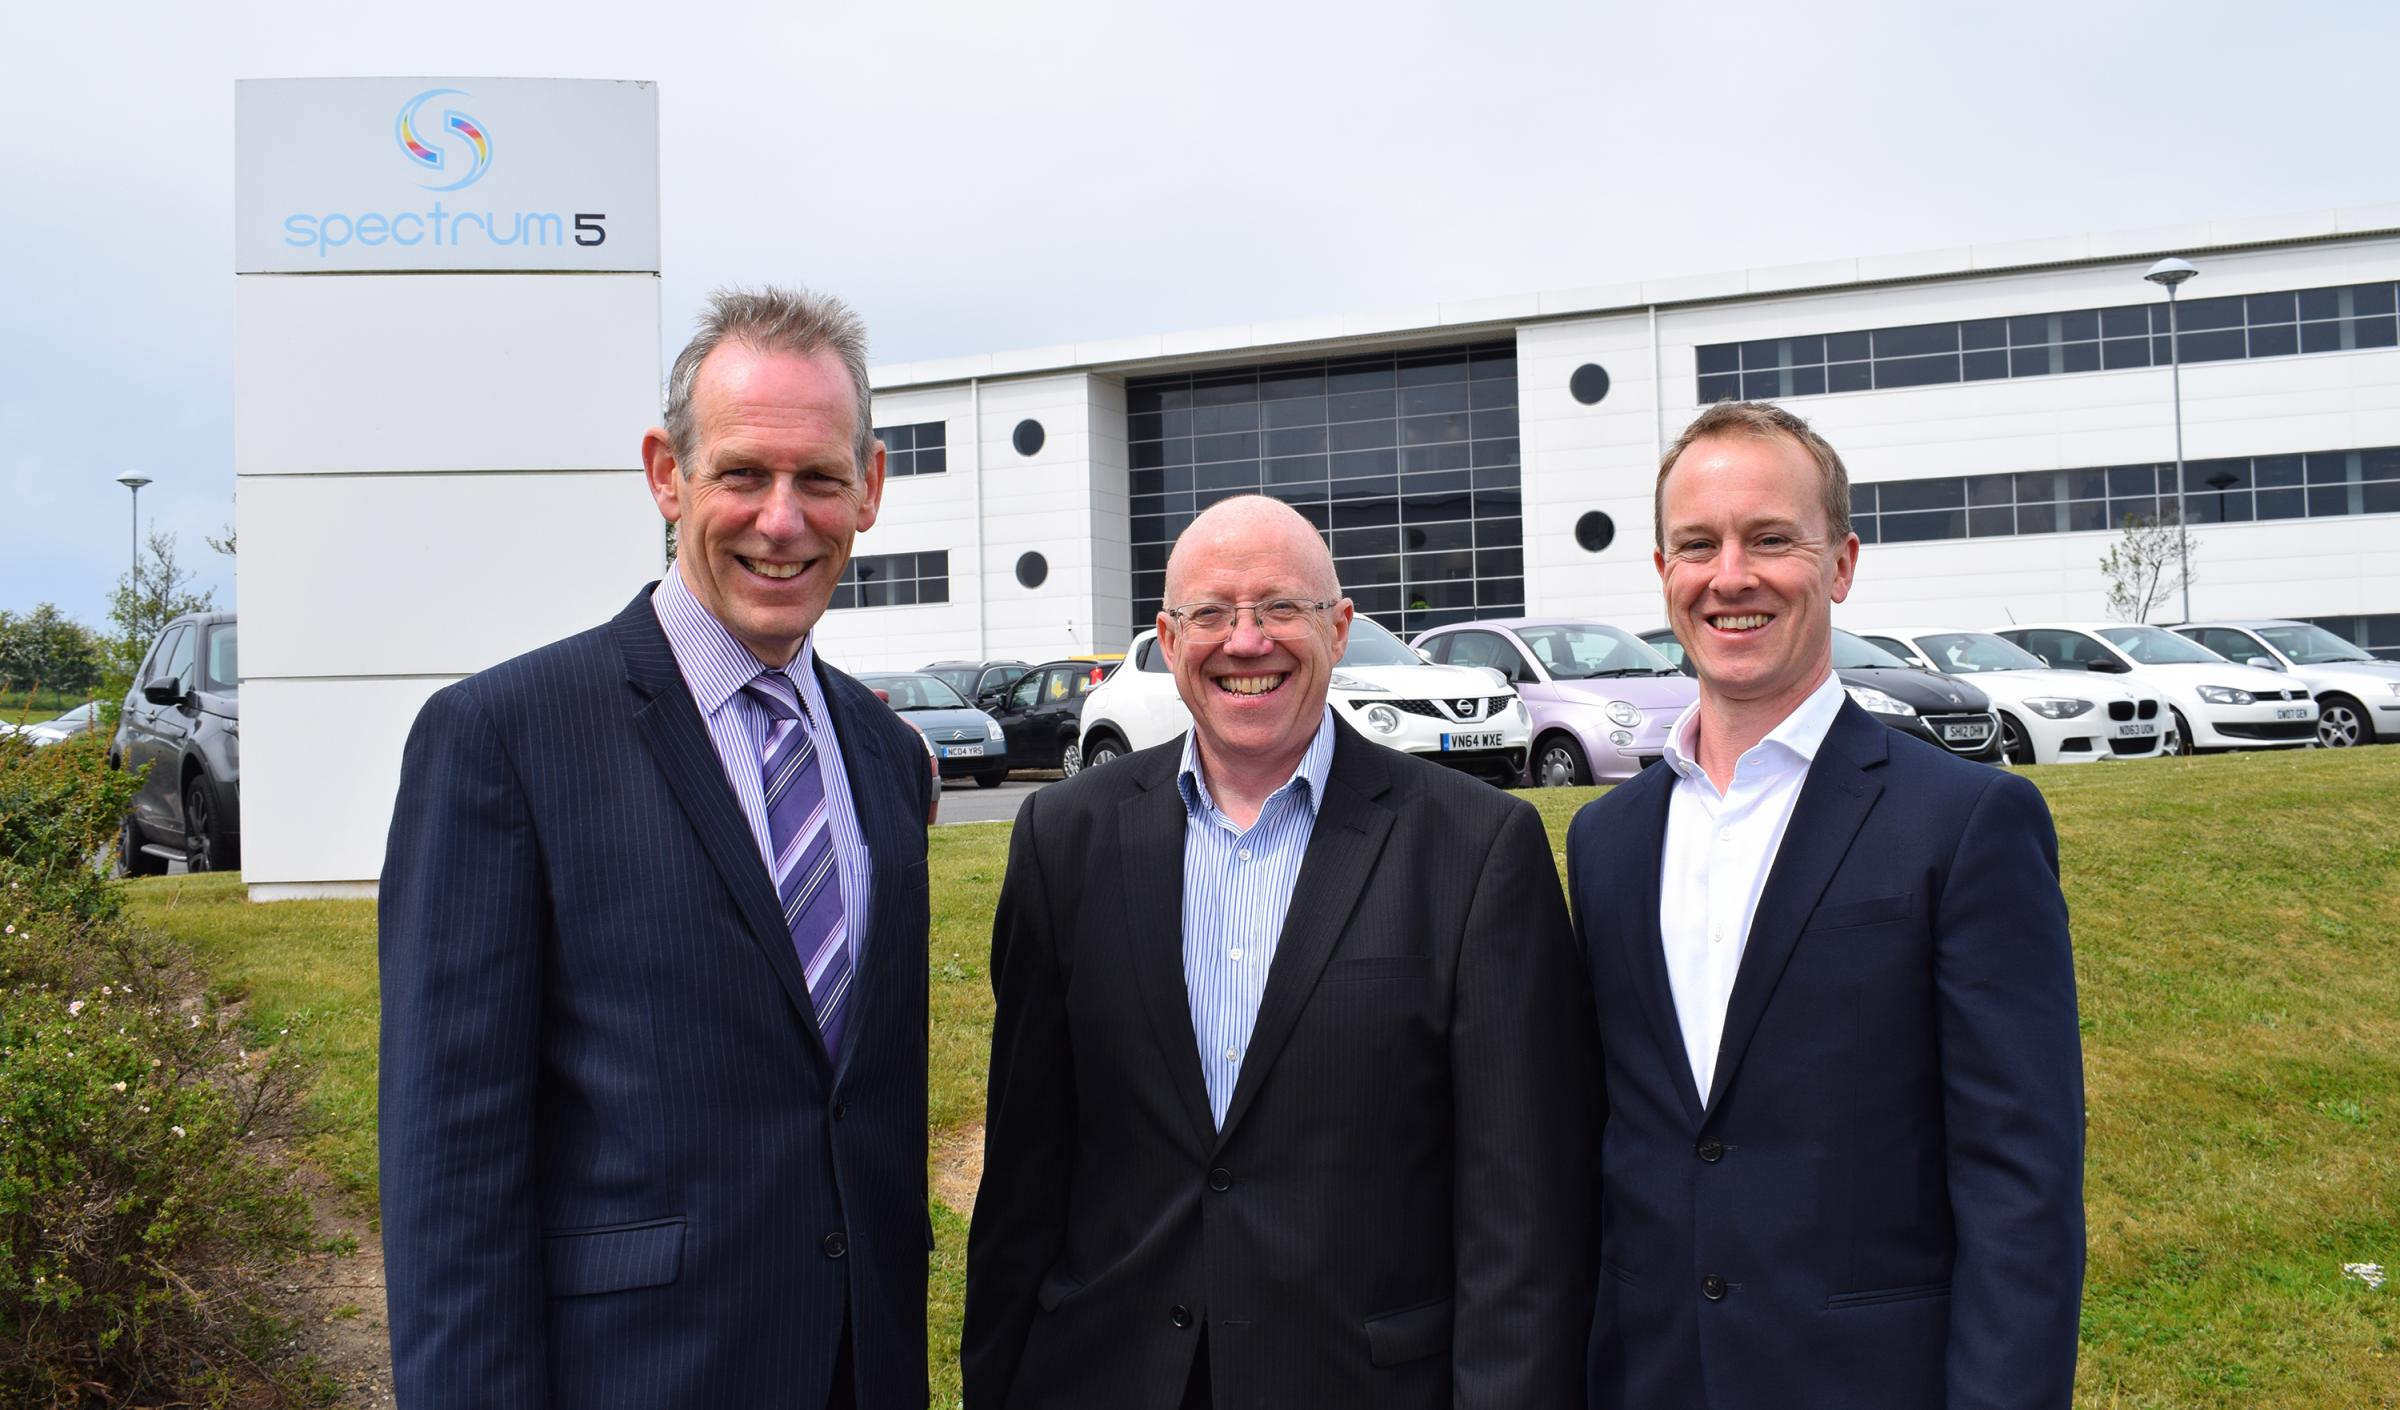 MOVE: Robert Patterson, of property agent Sanderson Weatherall, with Northumbrian Water's John McGovern and Spectrum's Paul Wellstead